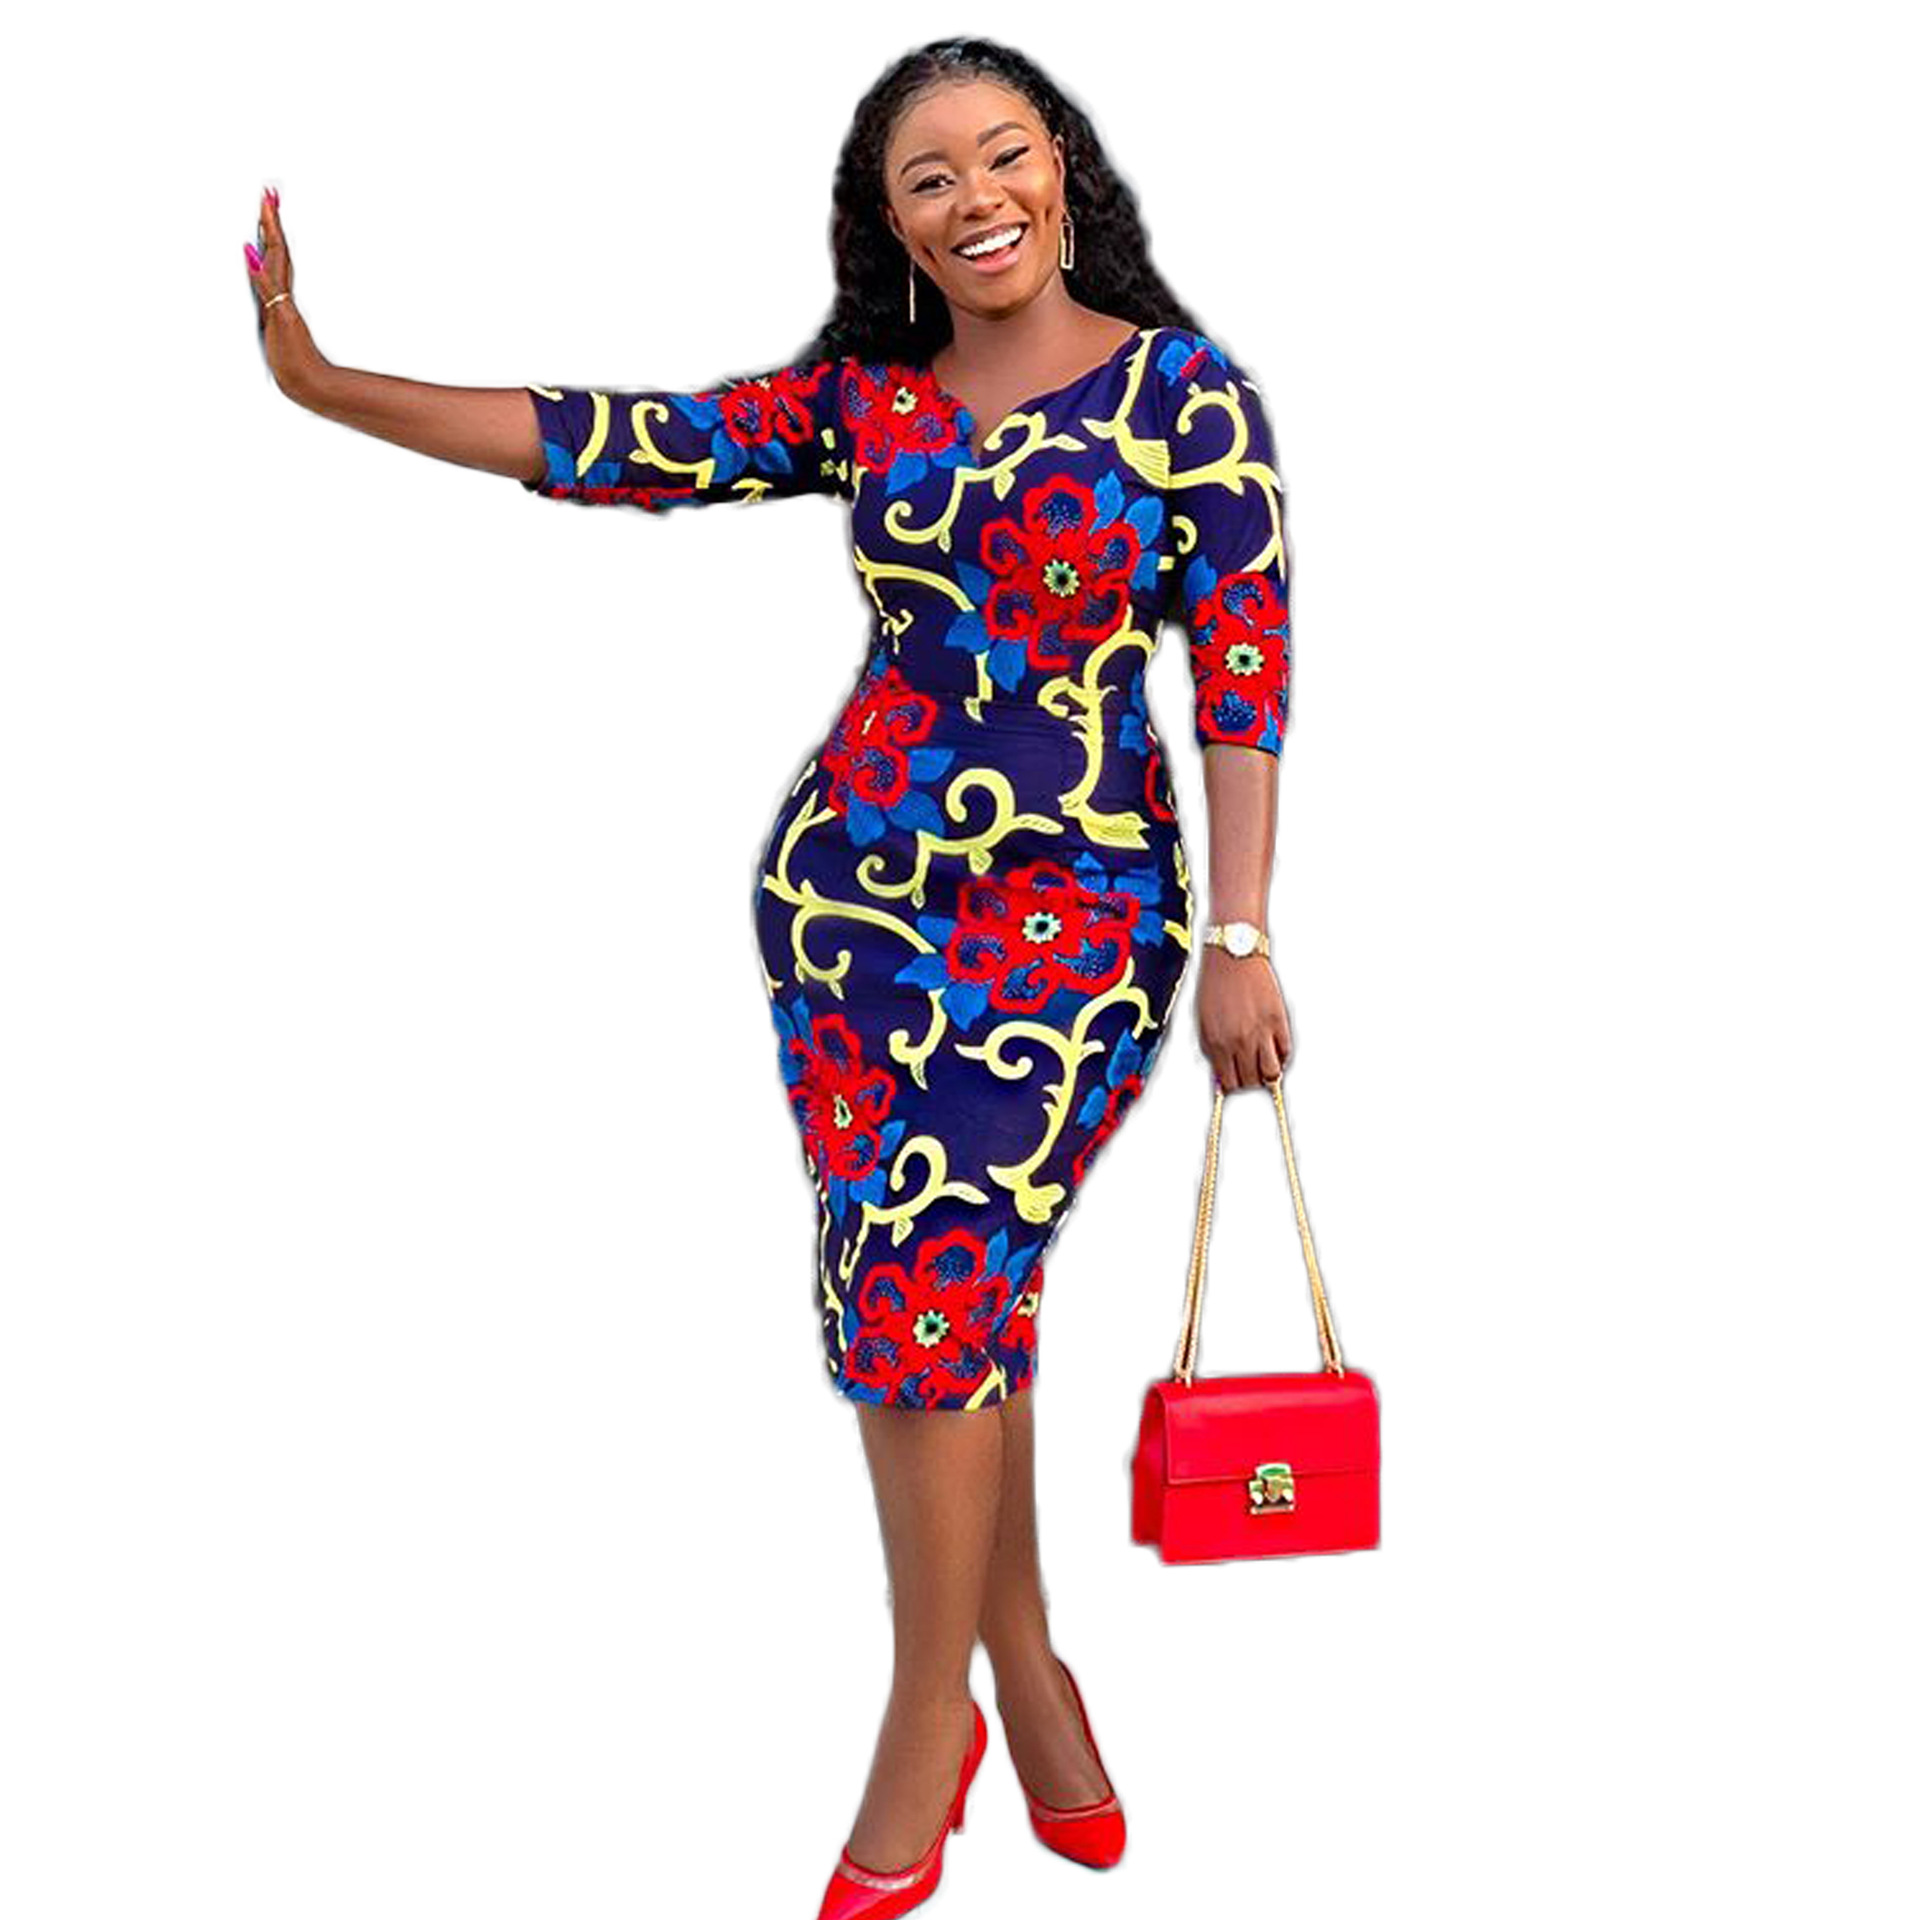 The new fall dress for women's wear 2019 is a fashionable, floral and ethnic v-neck dress with seven-minute sleeves